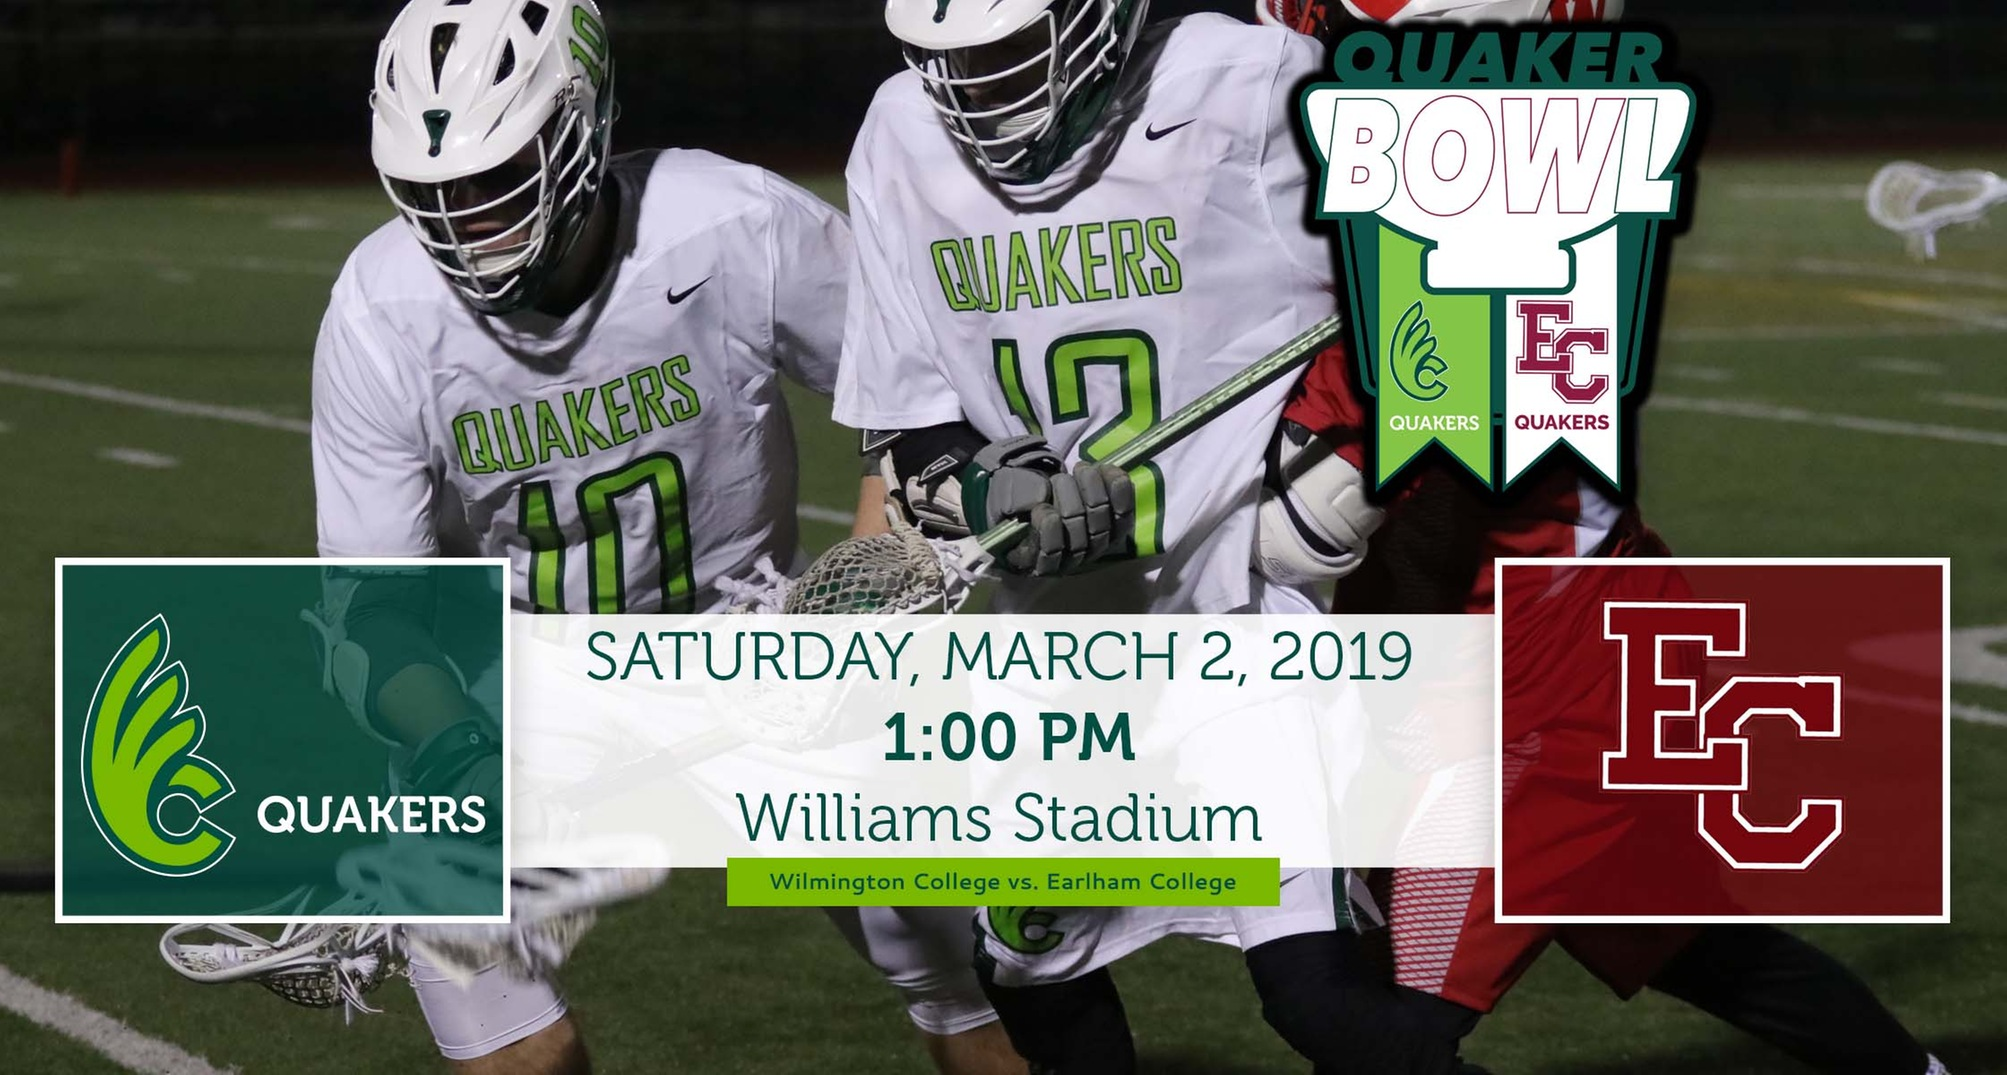 Men's Lacrosse Hosts Earlham in Quaker Bowl Rivalry Game Saturday